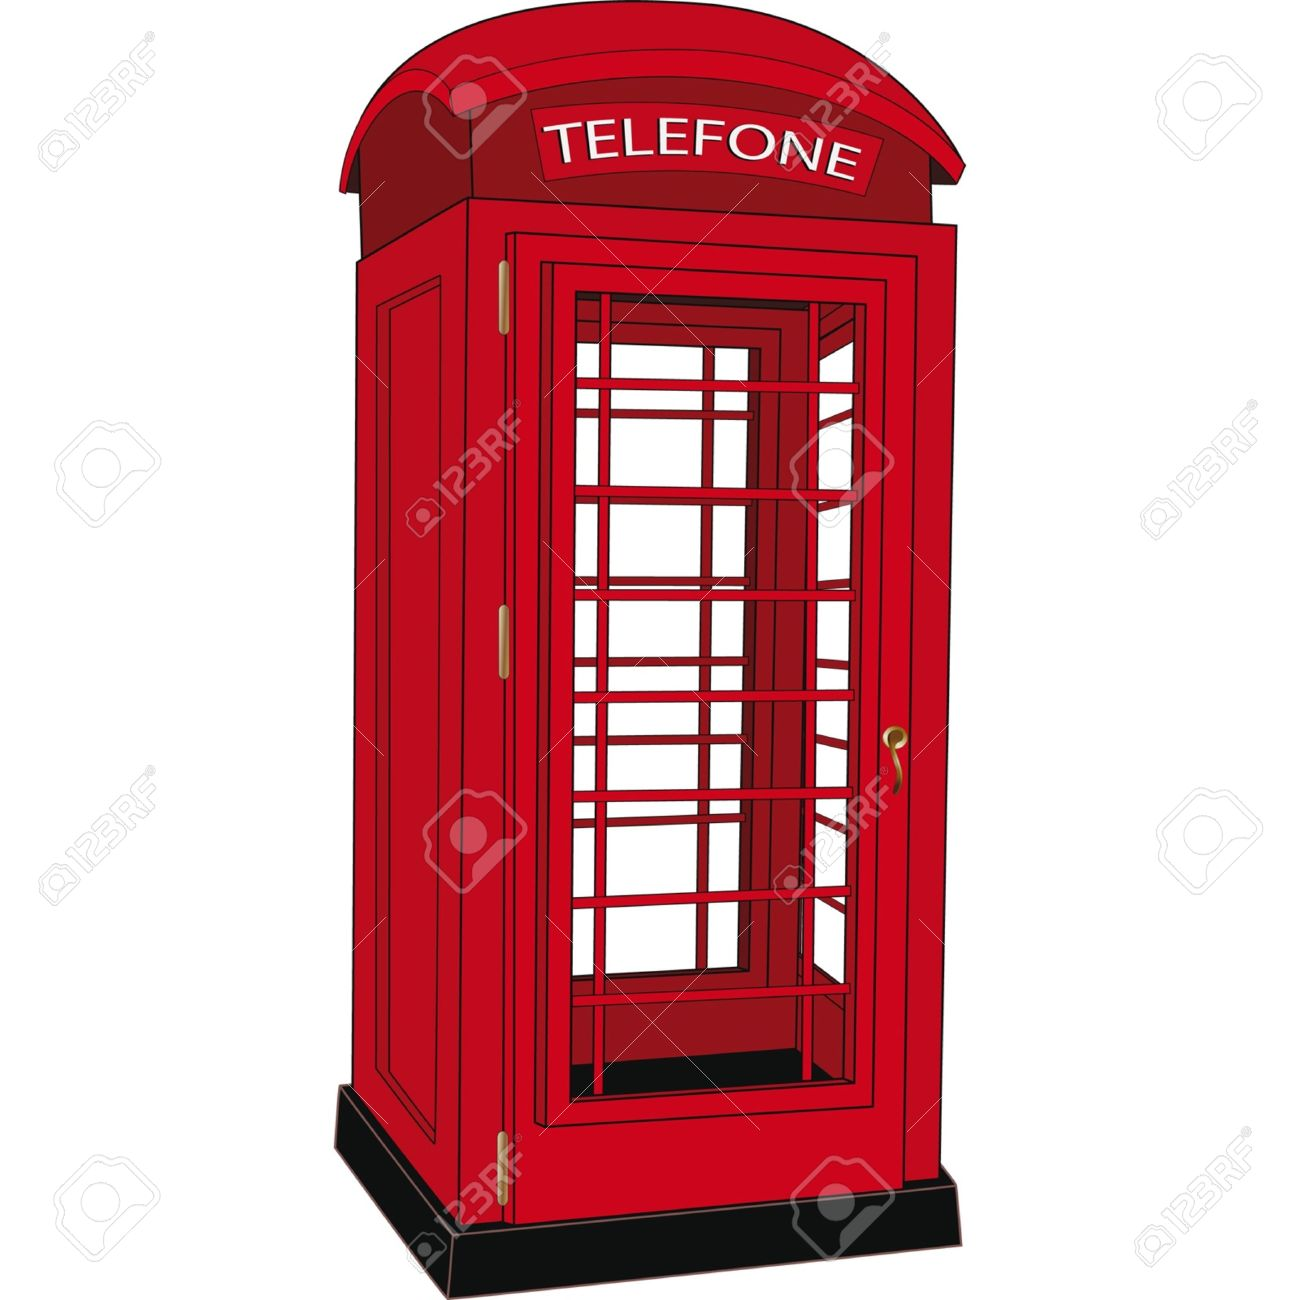 124 Phonebox Stock Vector Illustration And Royalty Free Phonebox.